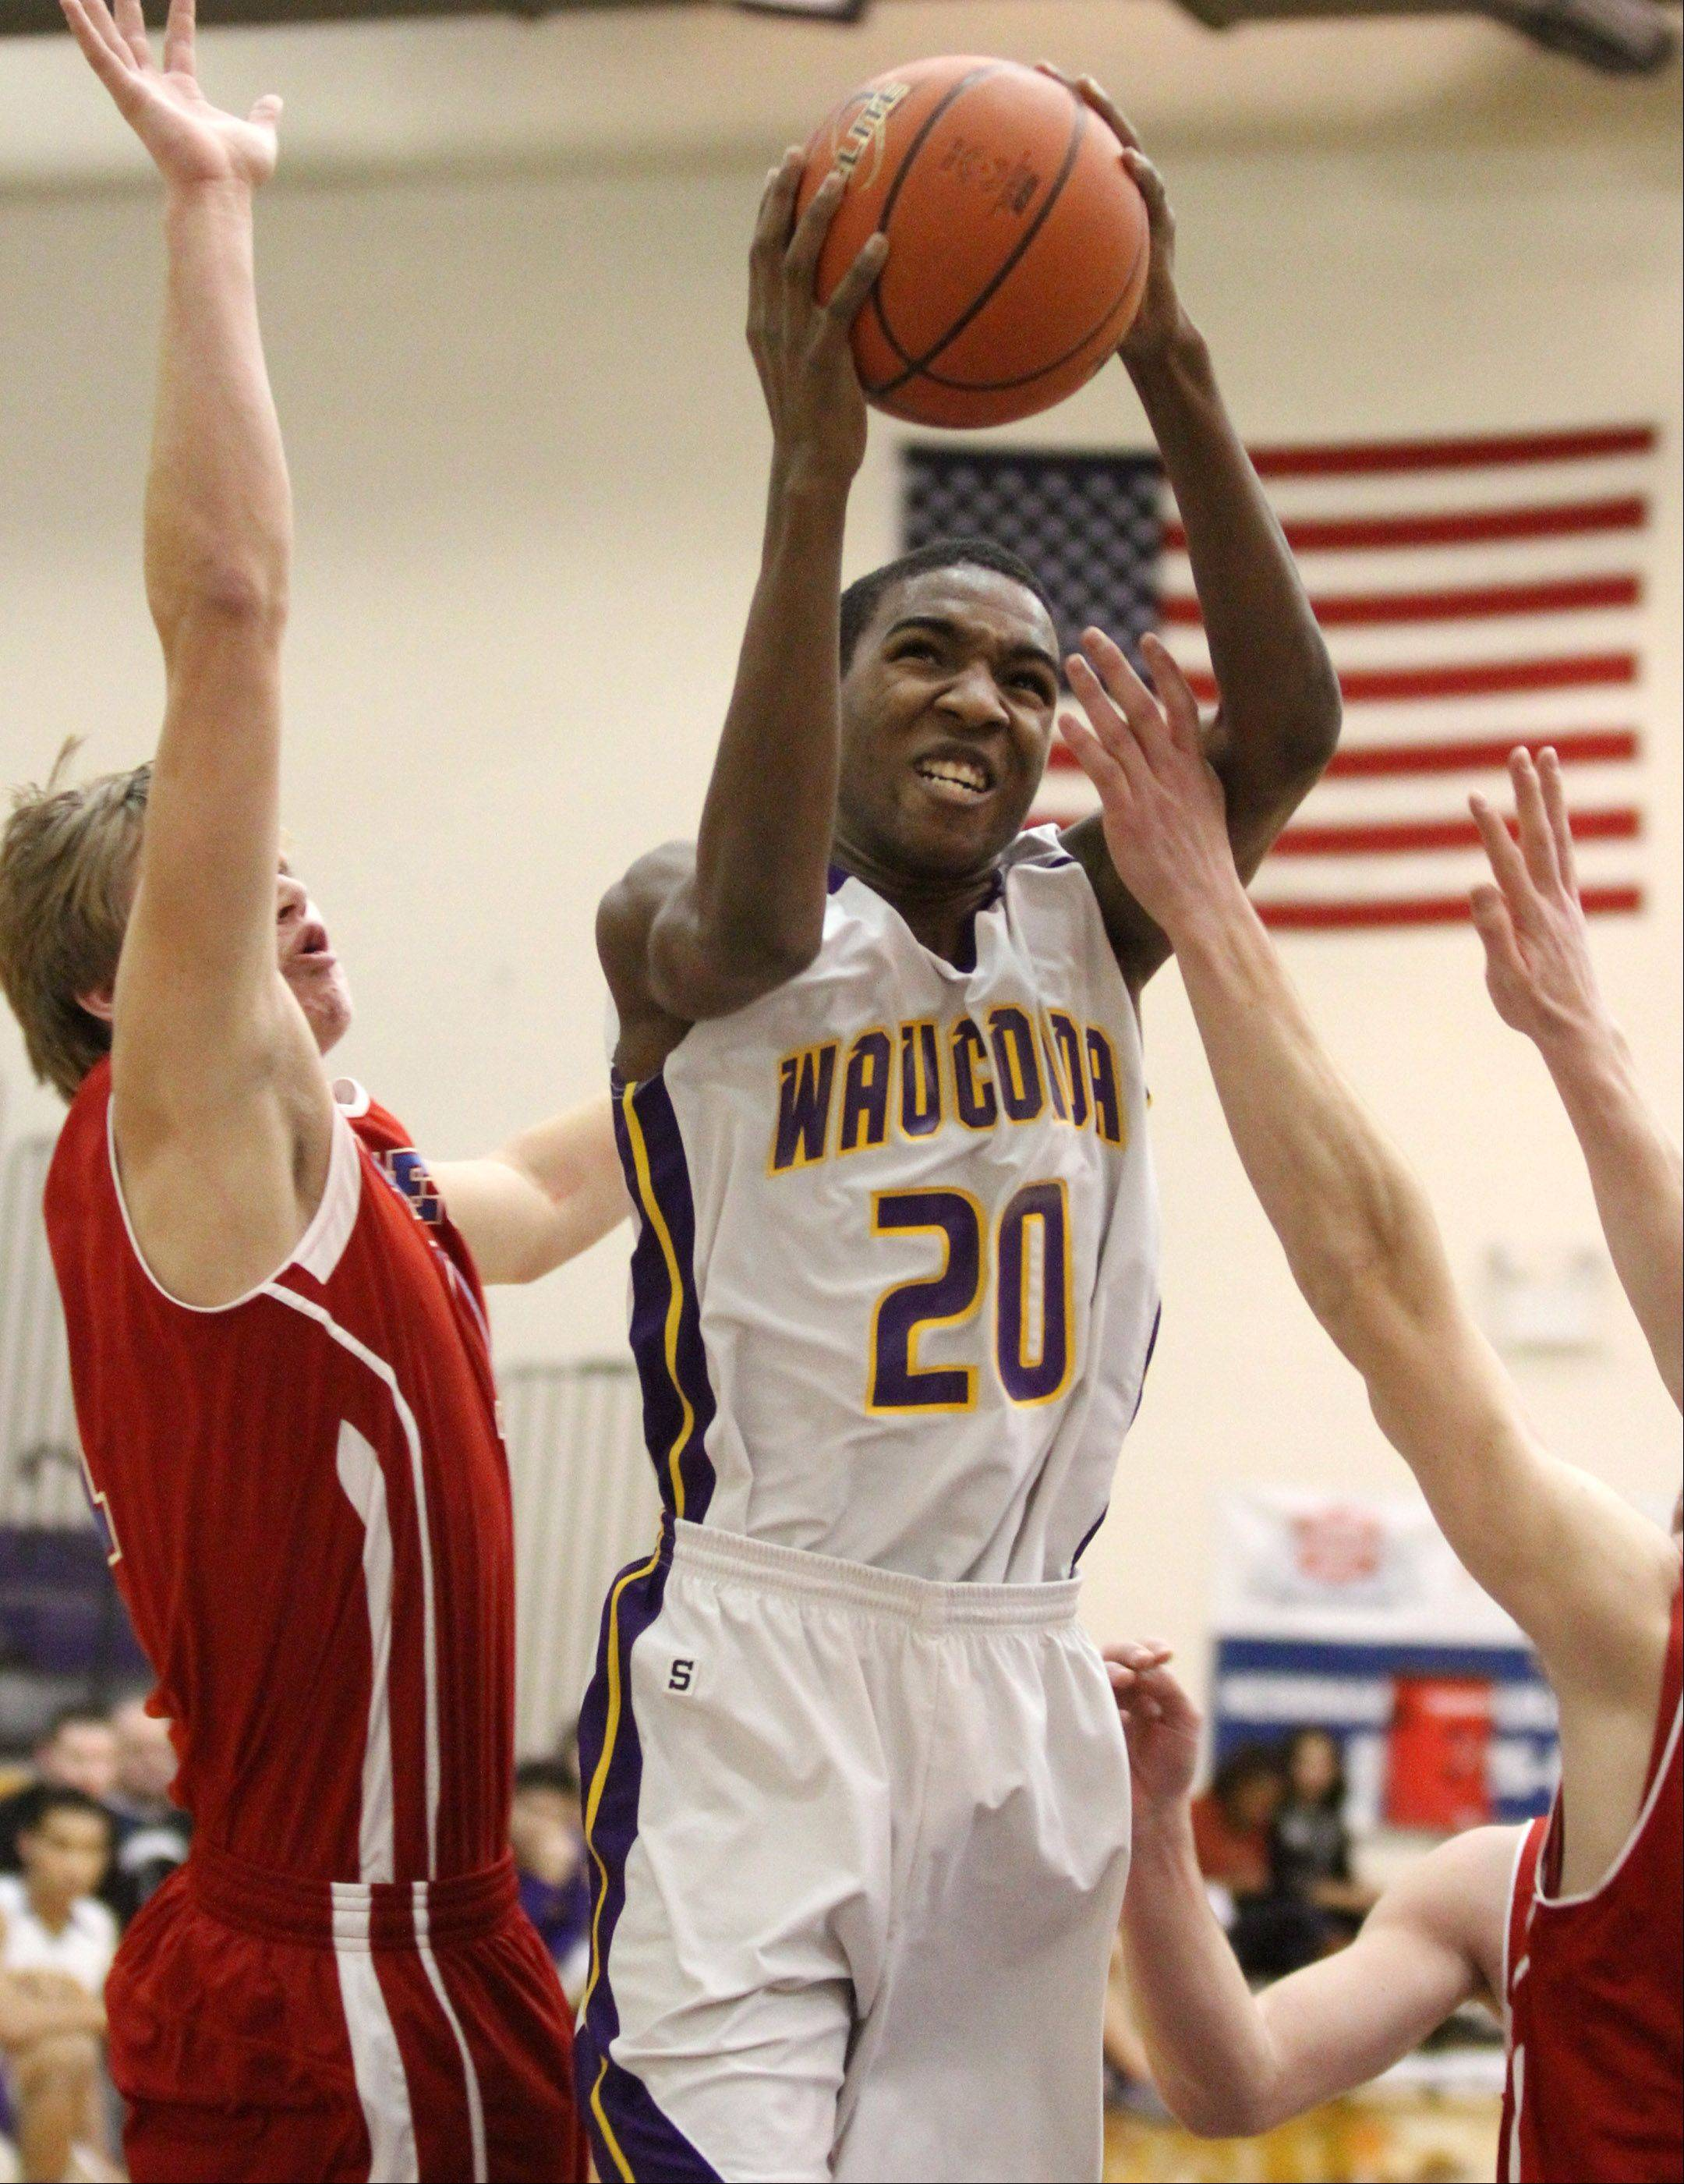 Wauconda's Devon Kings puts the ball up against Lakes.